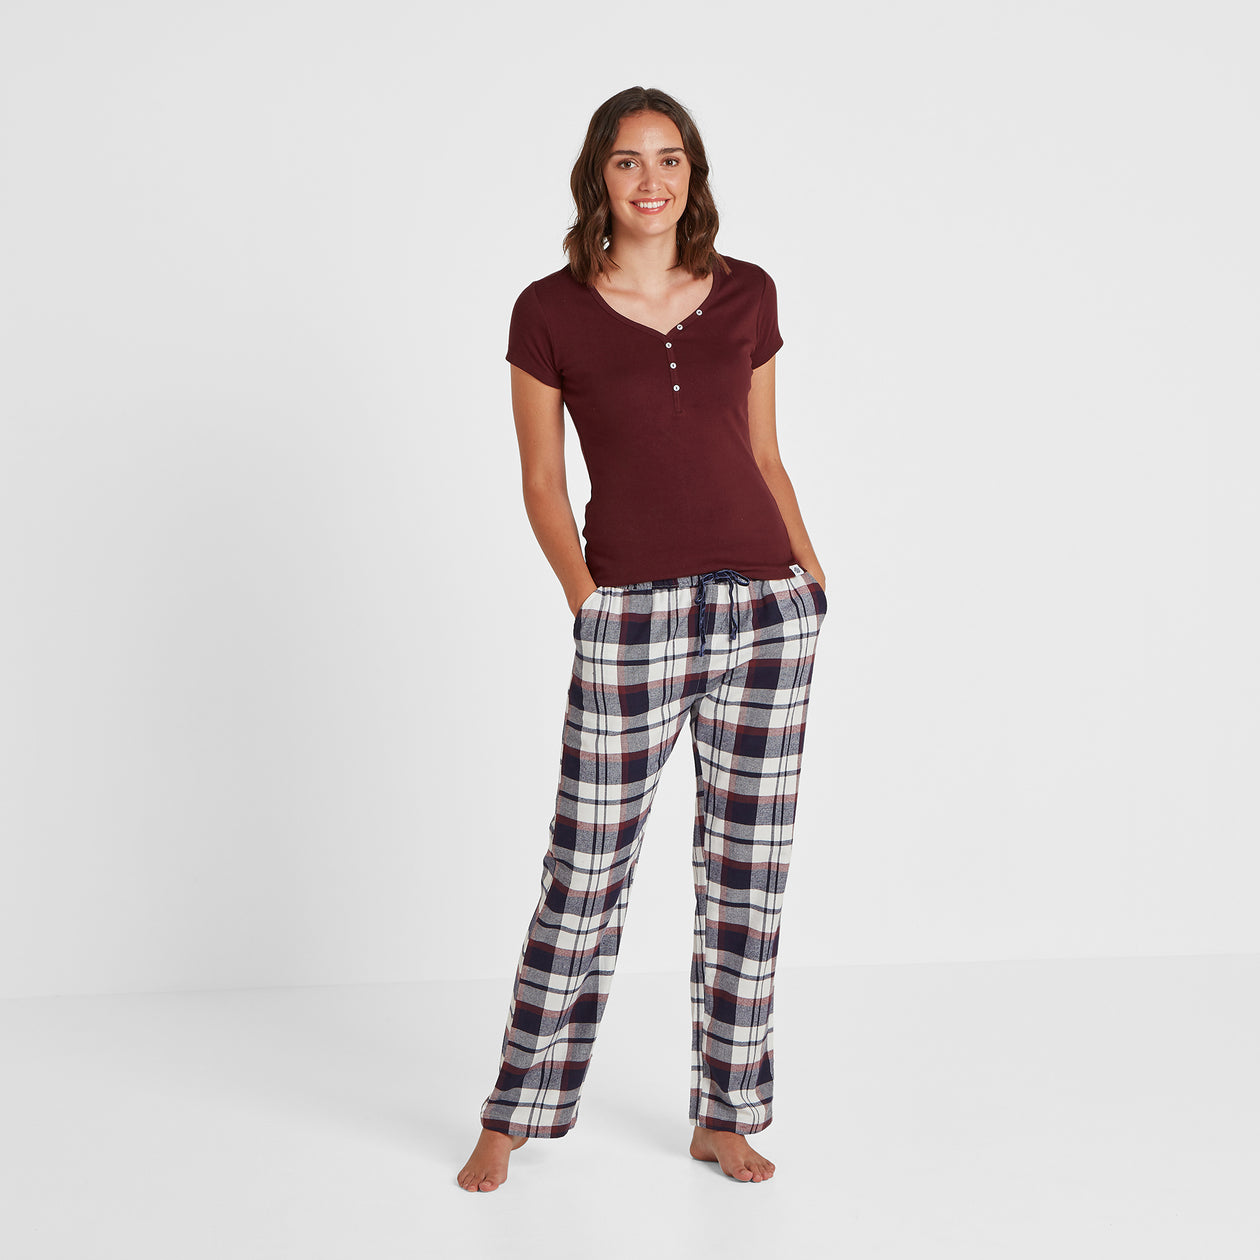 Cosy Womens Long Pyjamas - Deep Port/Deep Port Check image 4